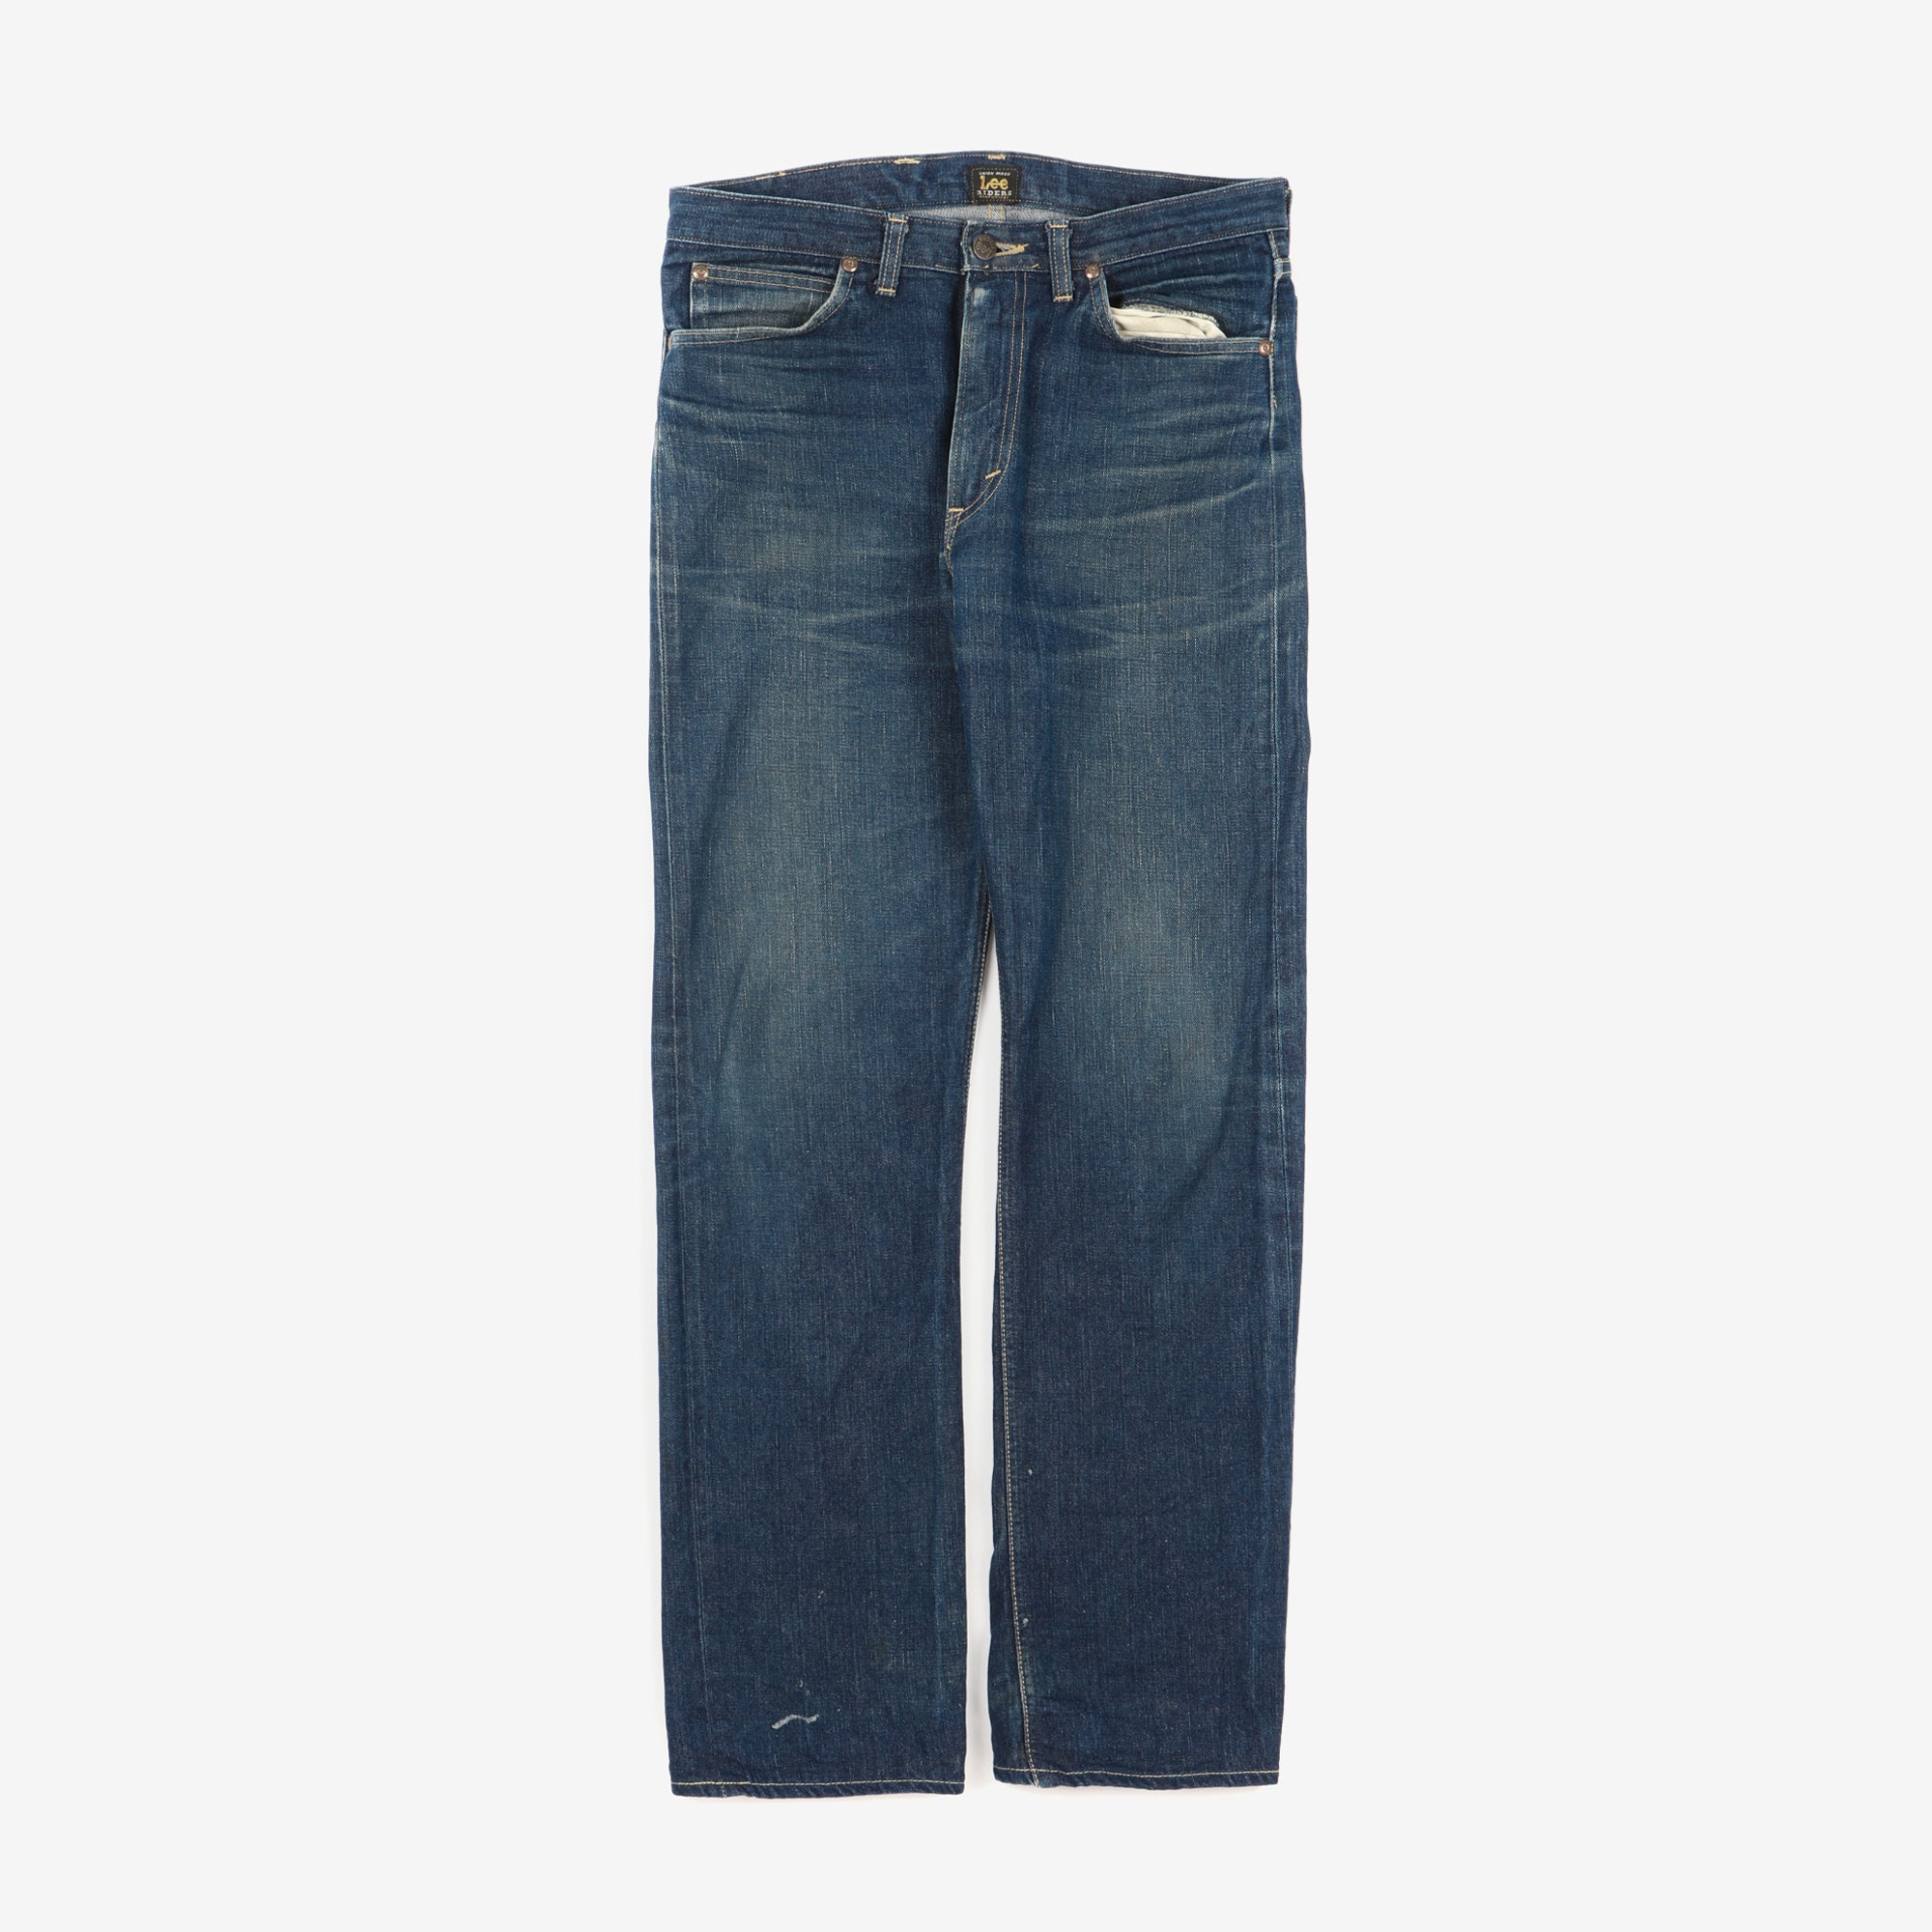 Lot 05111 Selvedge Denim